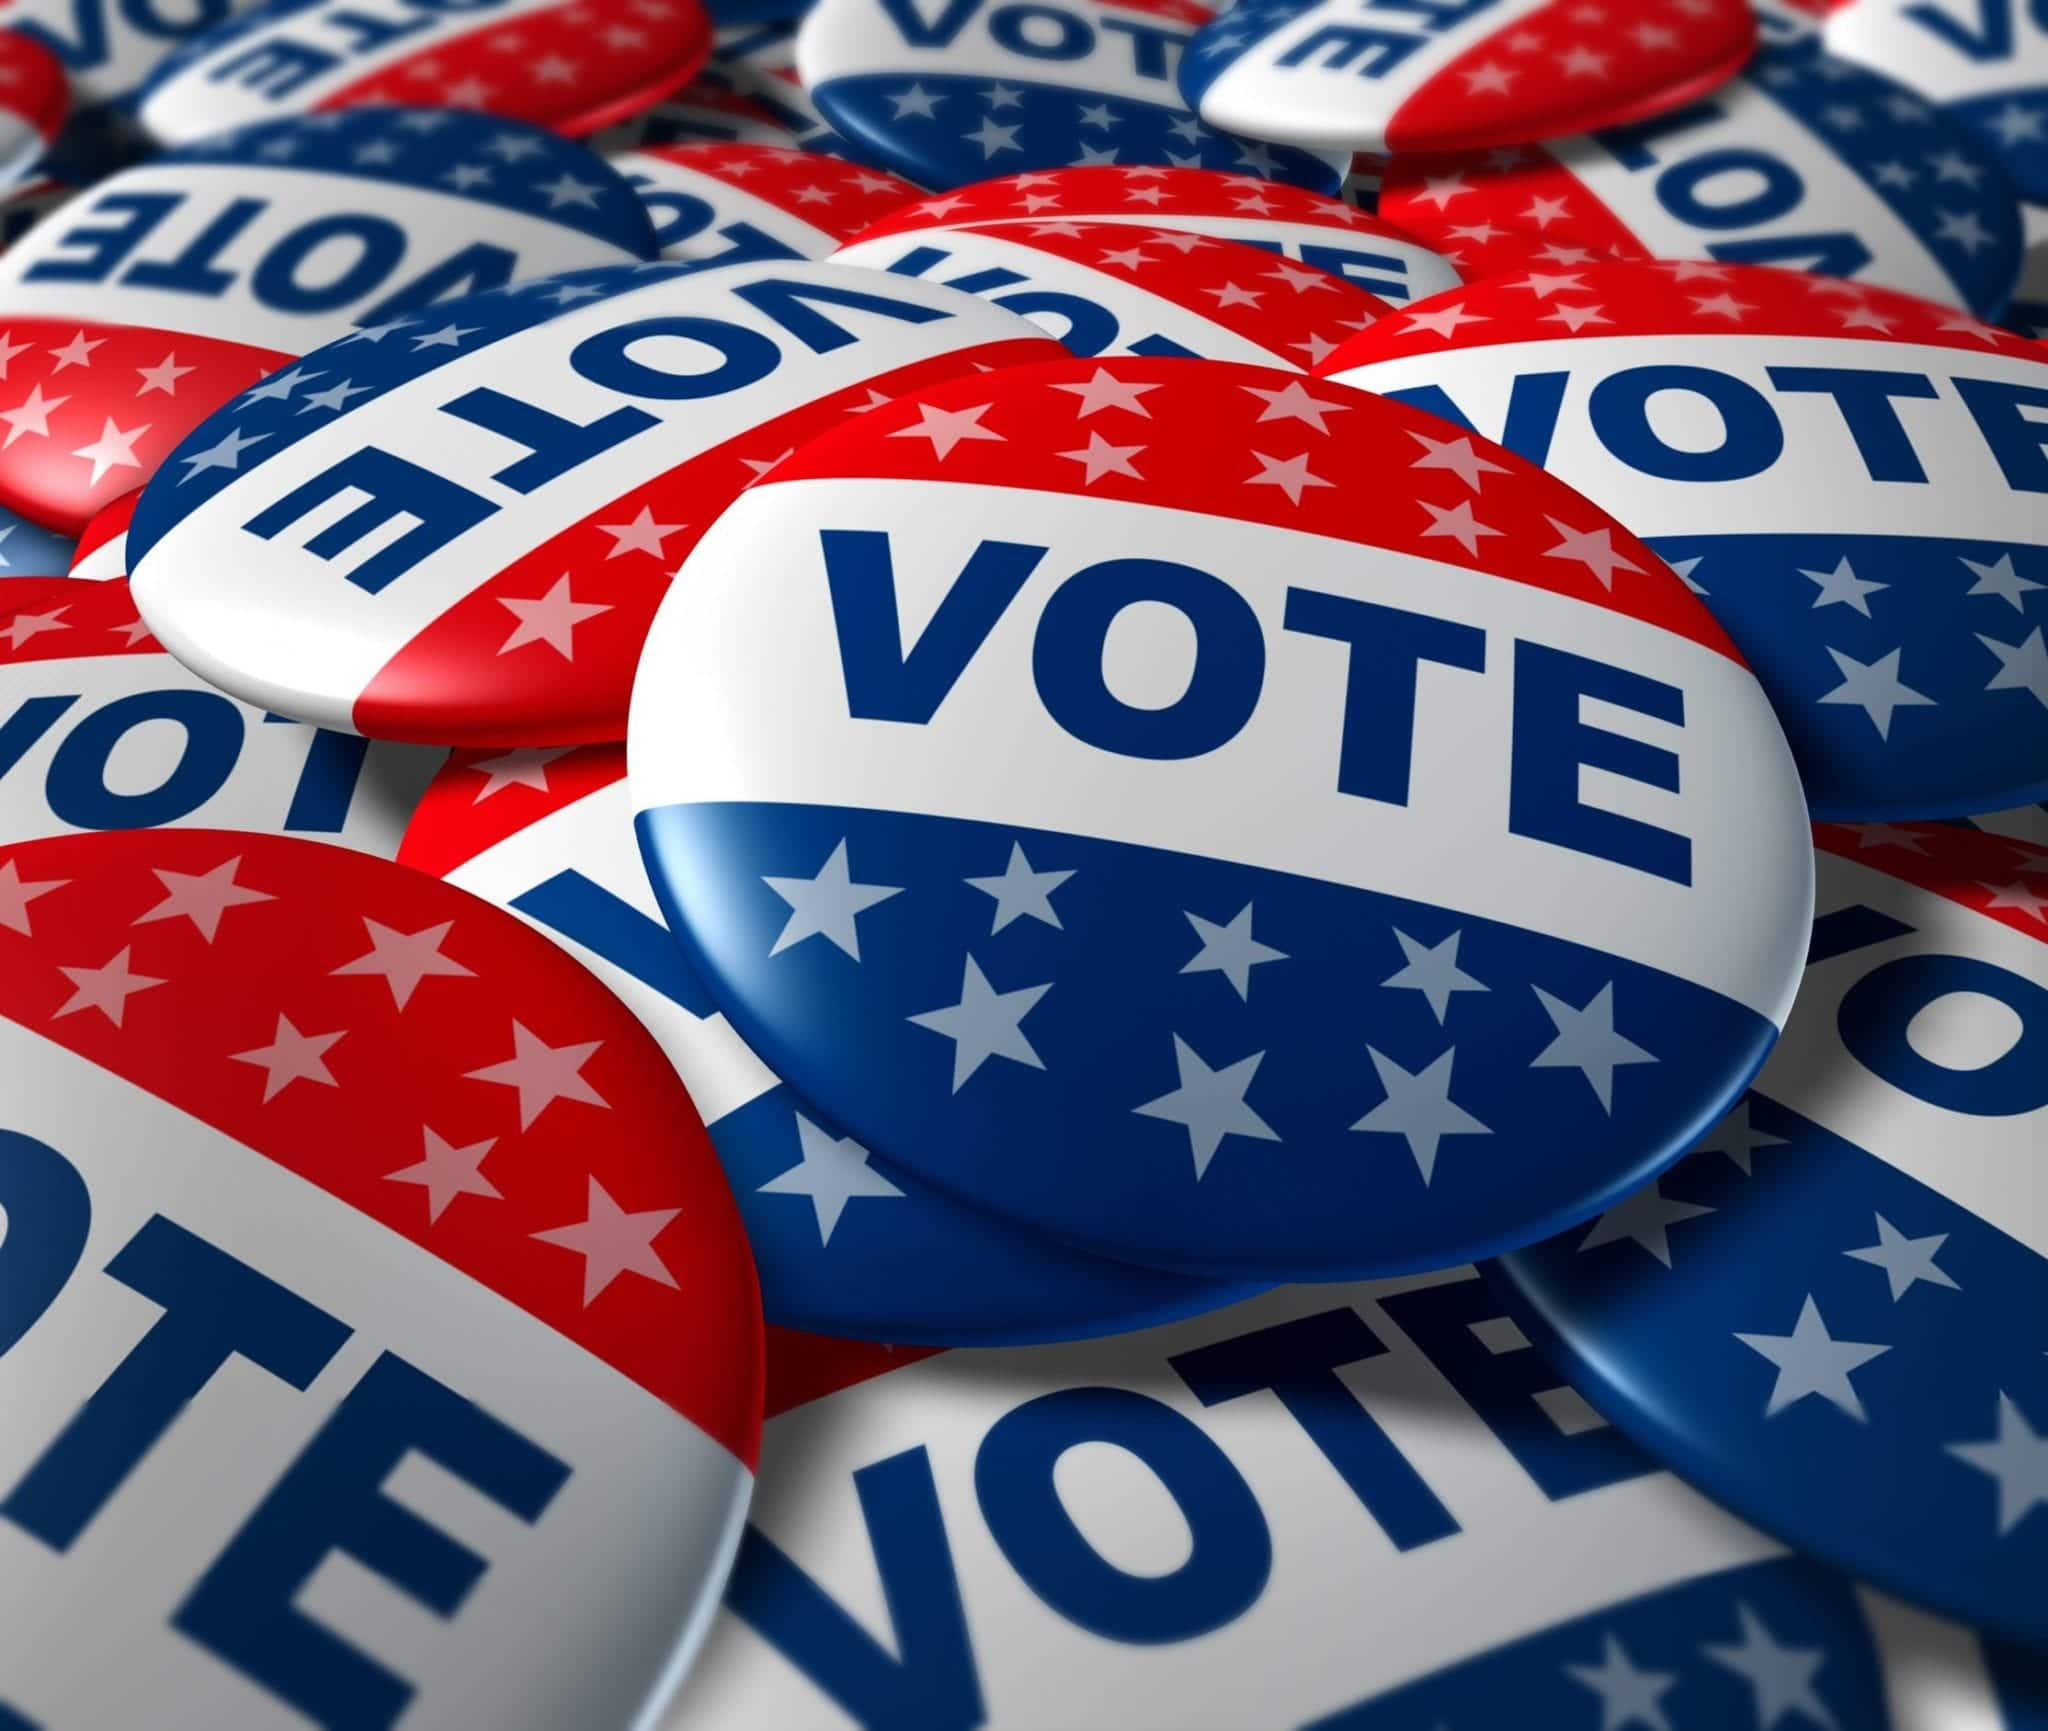 Voting in Texas: How to Avoid Unintentional Fraud Charges